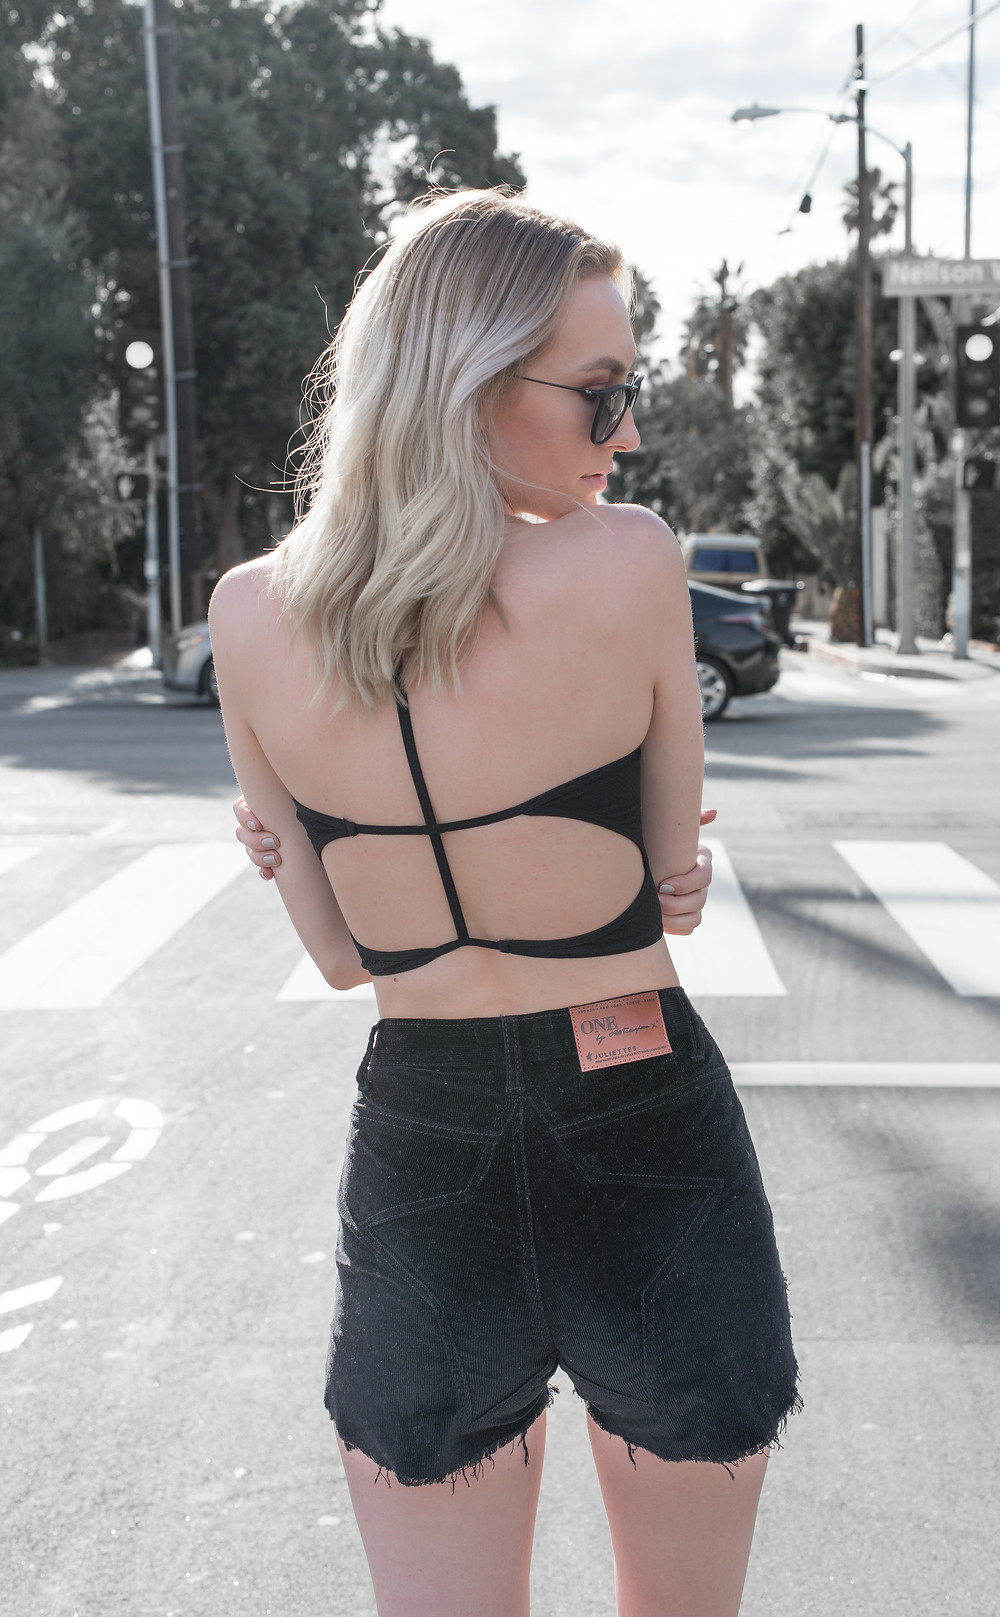 Blonde girl wearing a crop top from free people